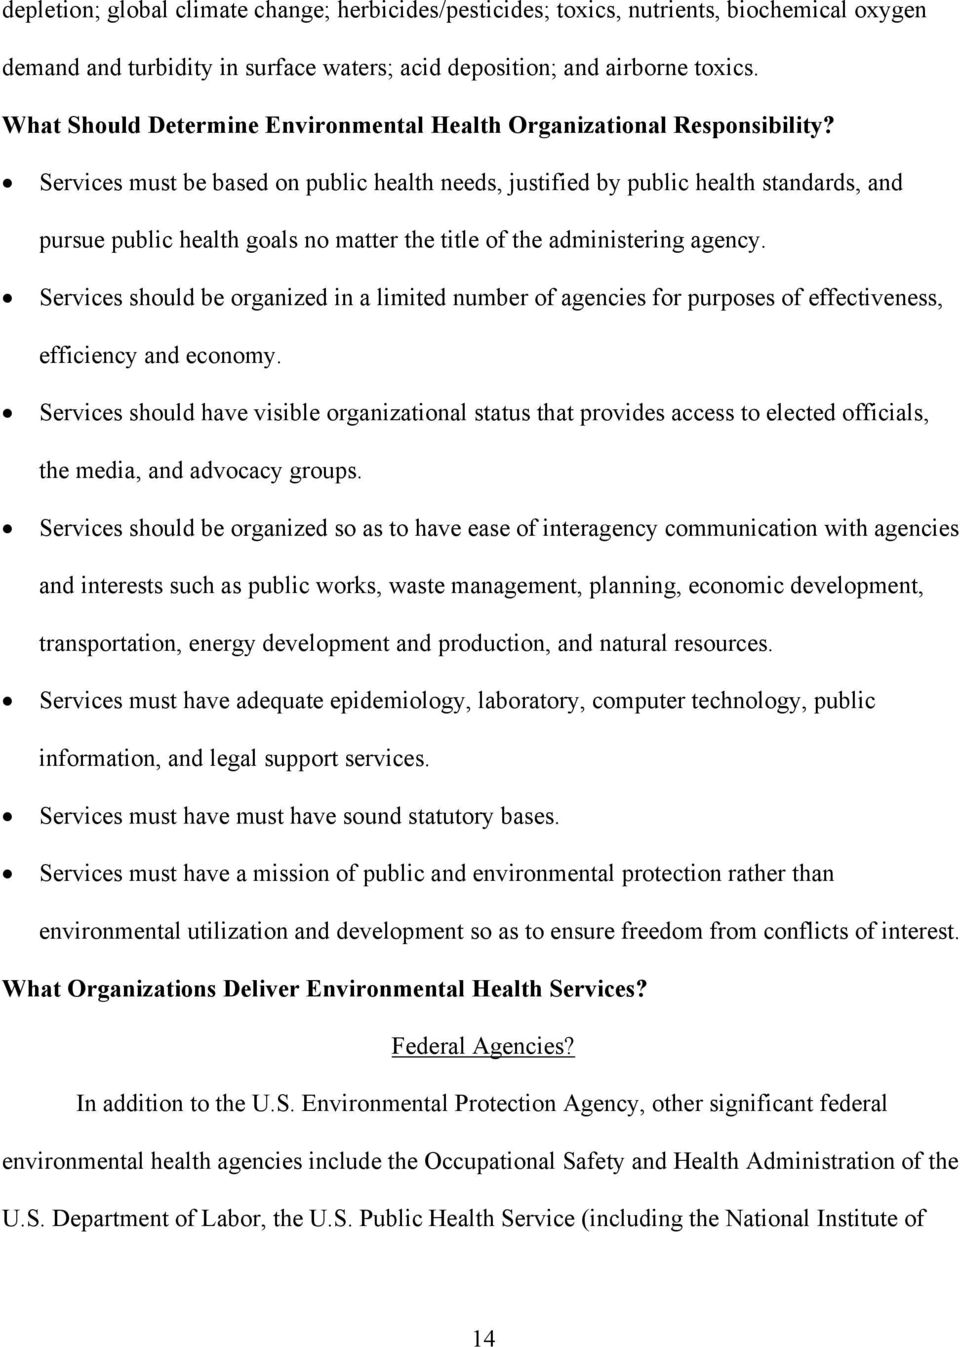 Services must be based on public health needs, justified by public health standards, and pursue public health goals no matter the title of the administering agency.